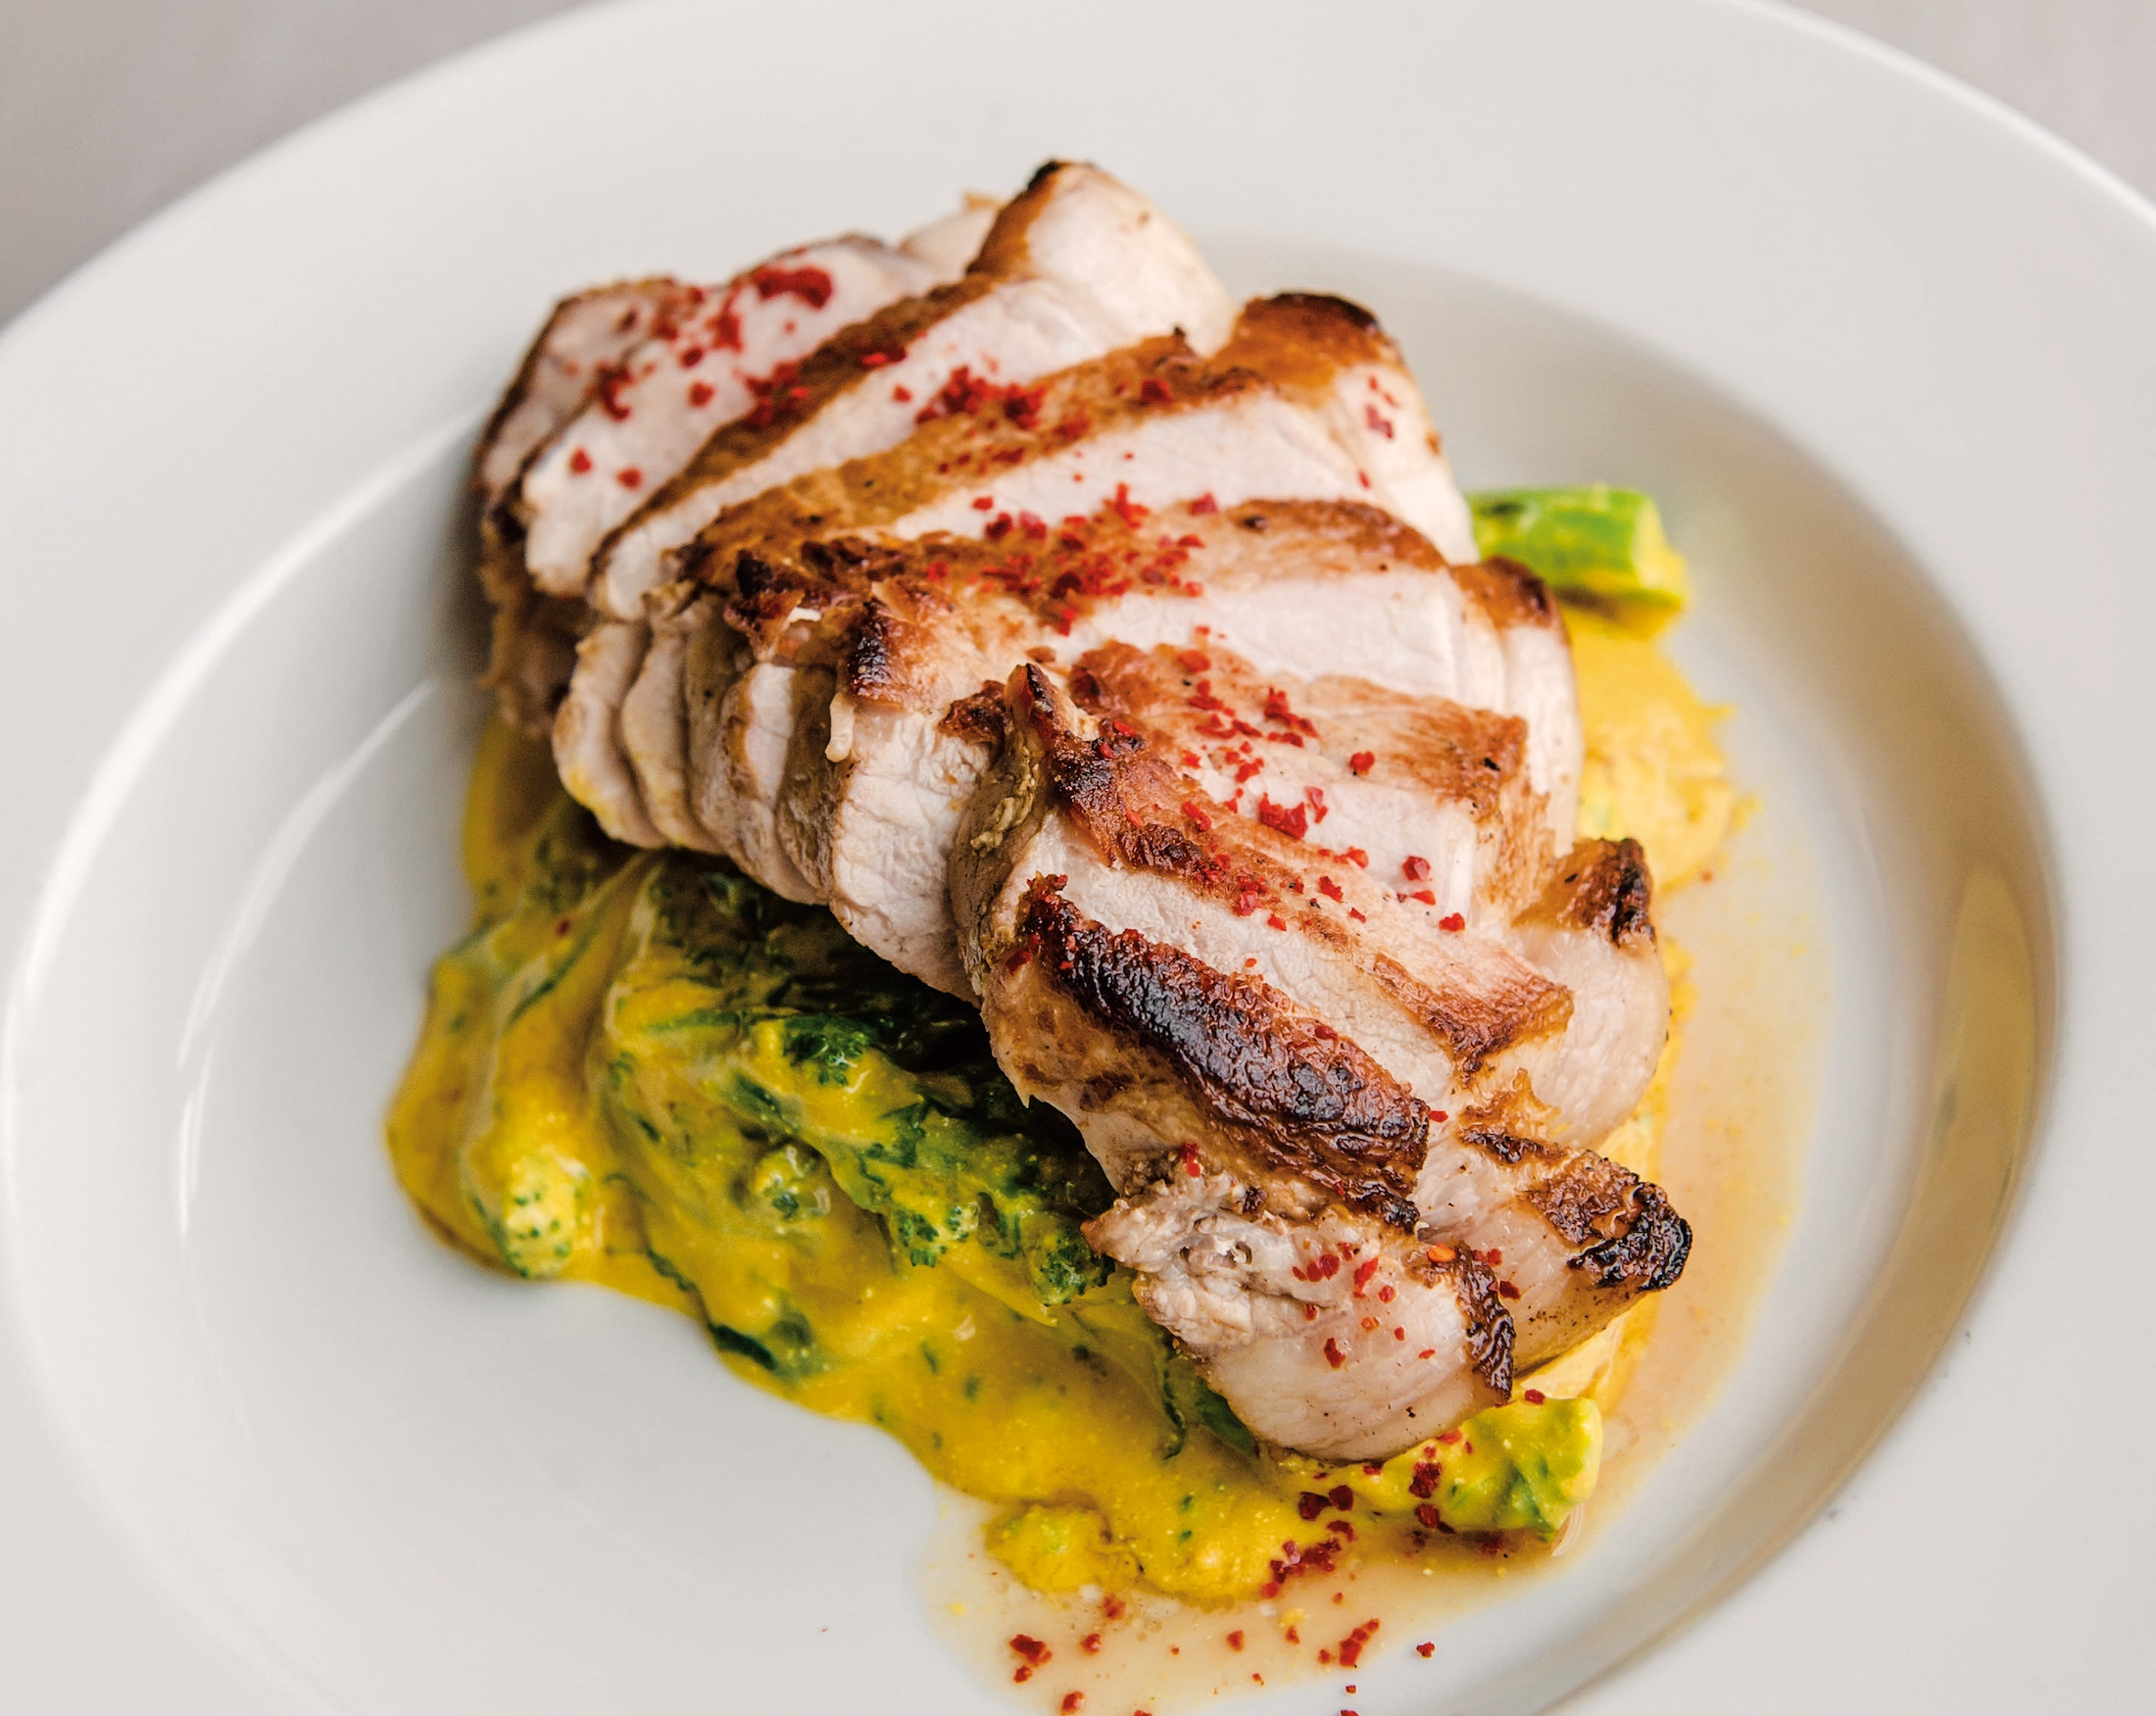 Roast It: Pork Tenderloin With Chinese Mustard Sauce